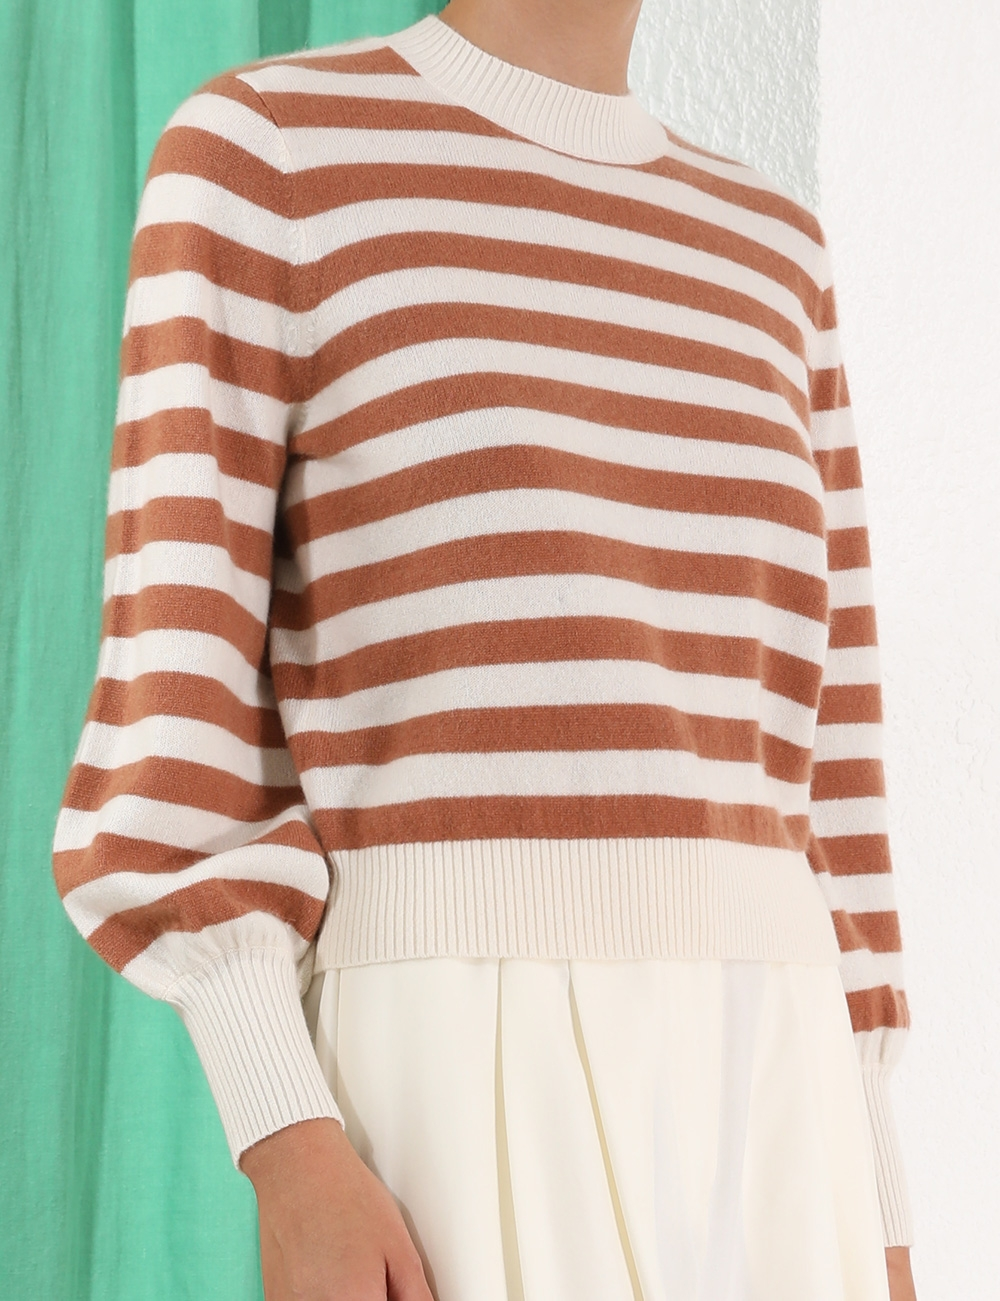 Zippy Cashmere Top